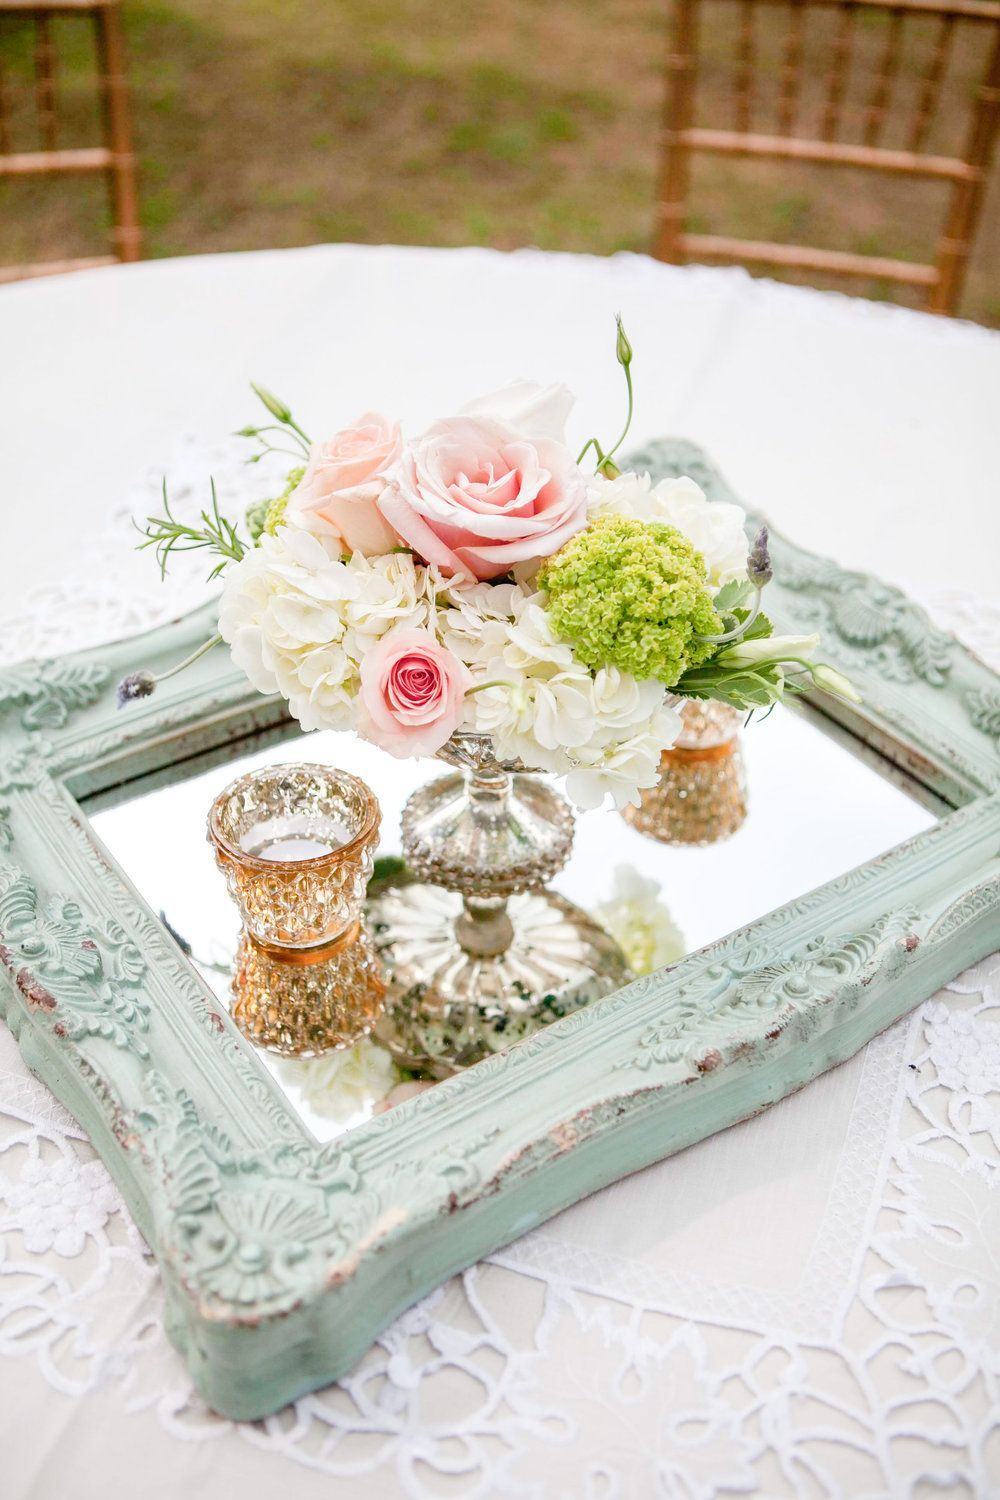 20 Inspiring Vintage Wedding Centerpieces Ideas | Pinterest ...